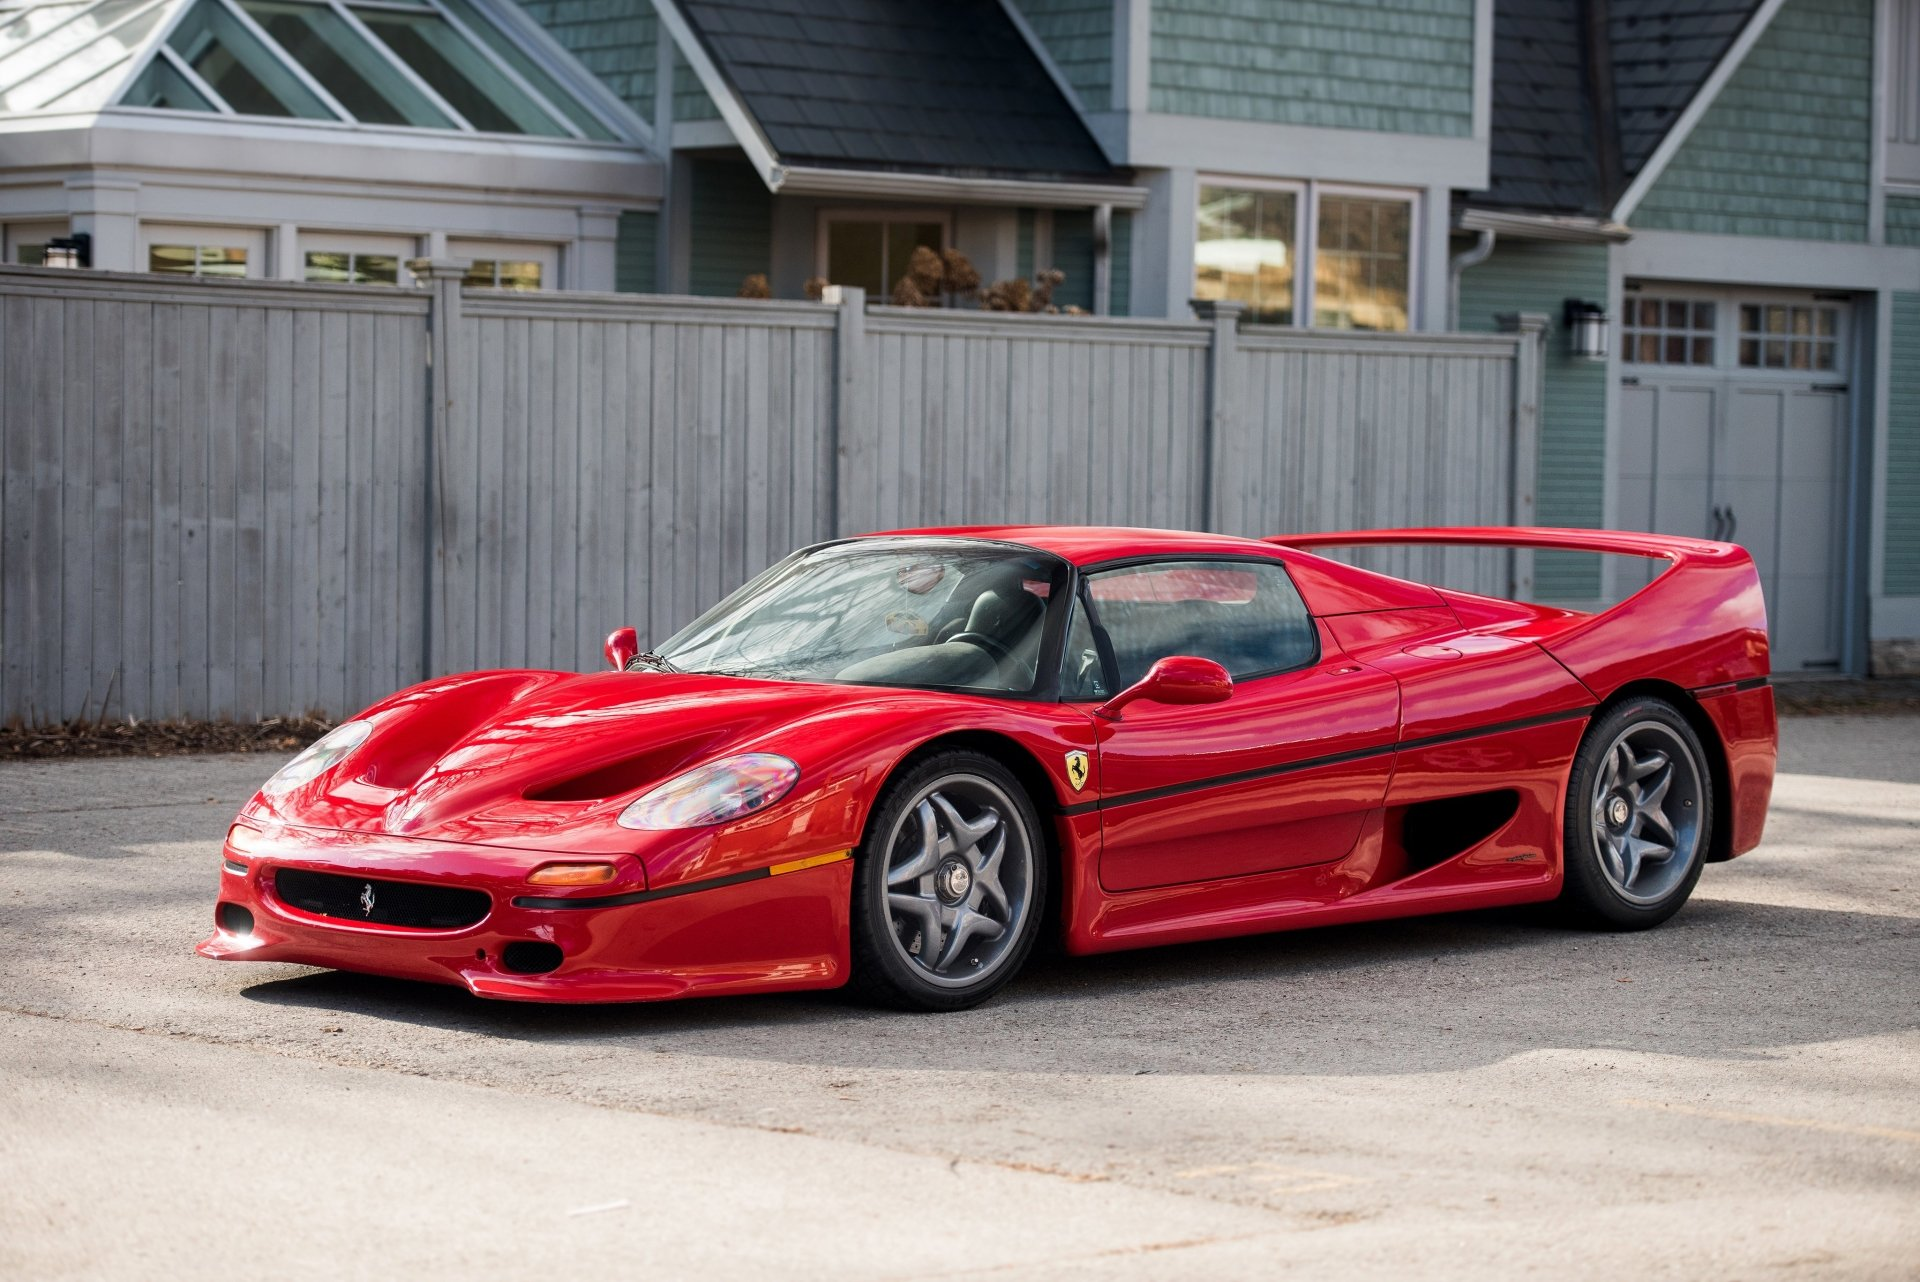 13 Ferrari F50 Hd Wallpapers Background Images Wallpaper Abyss